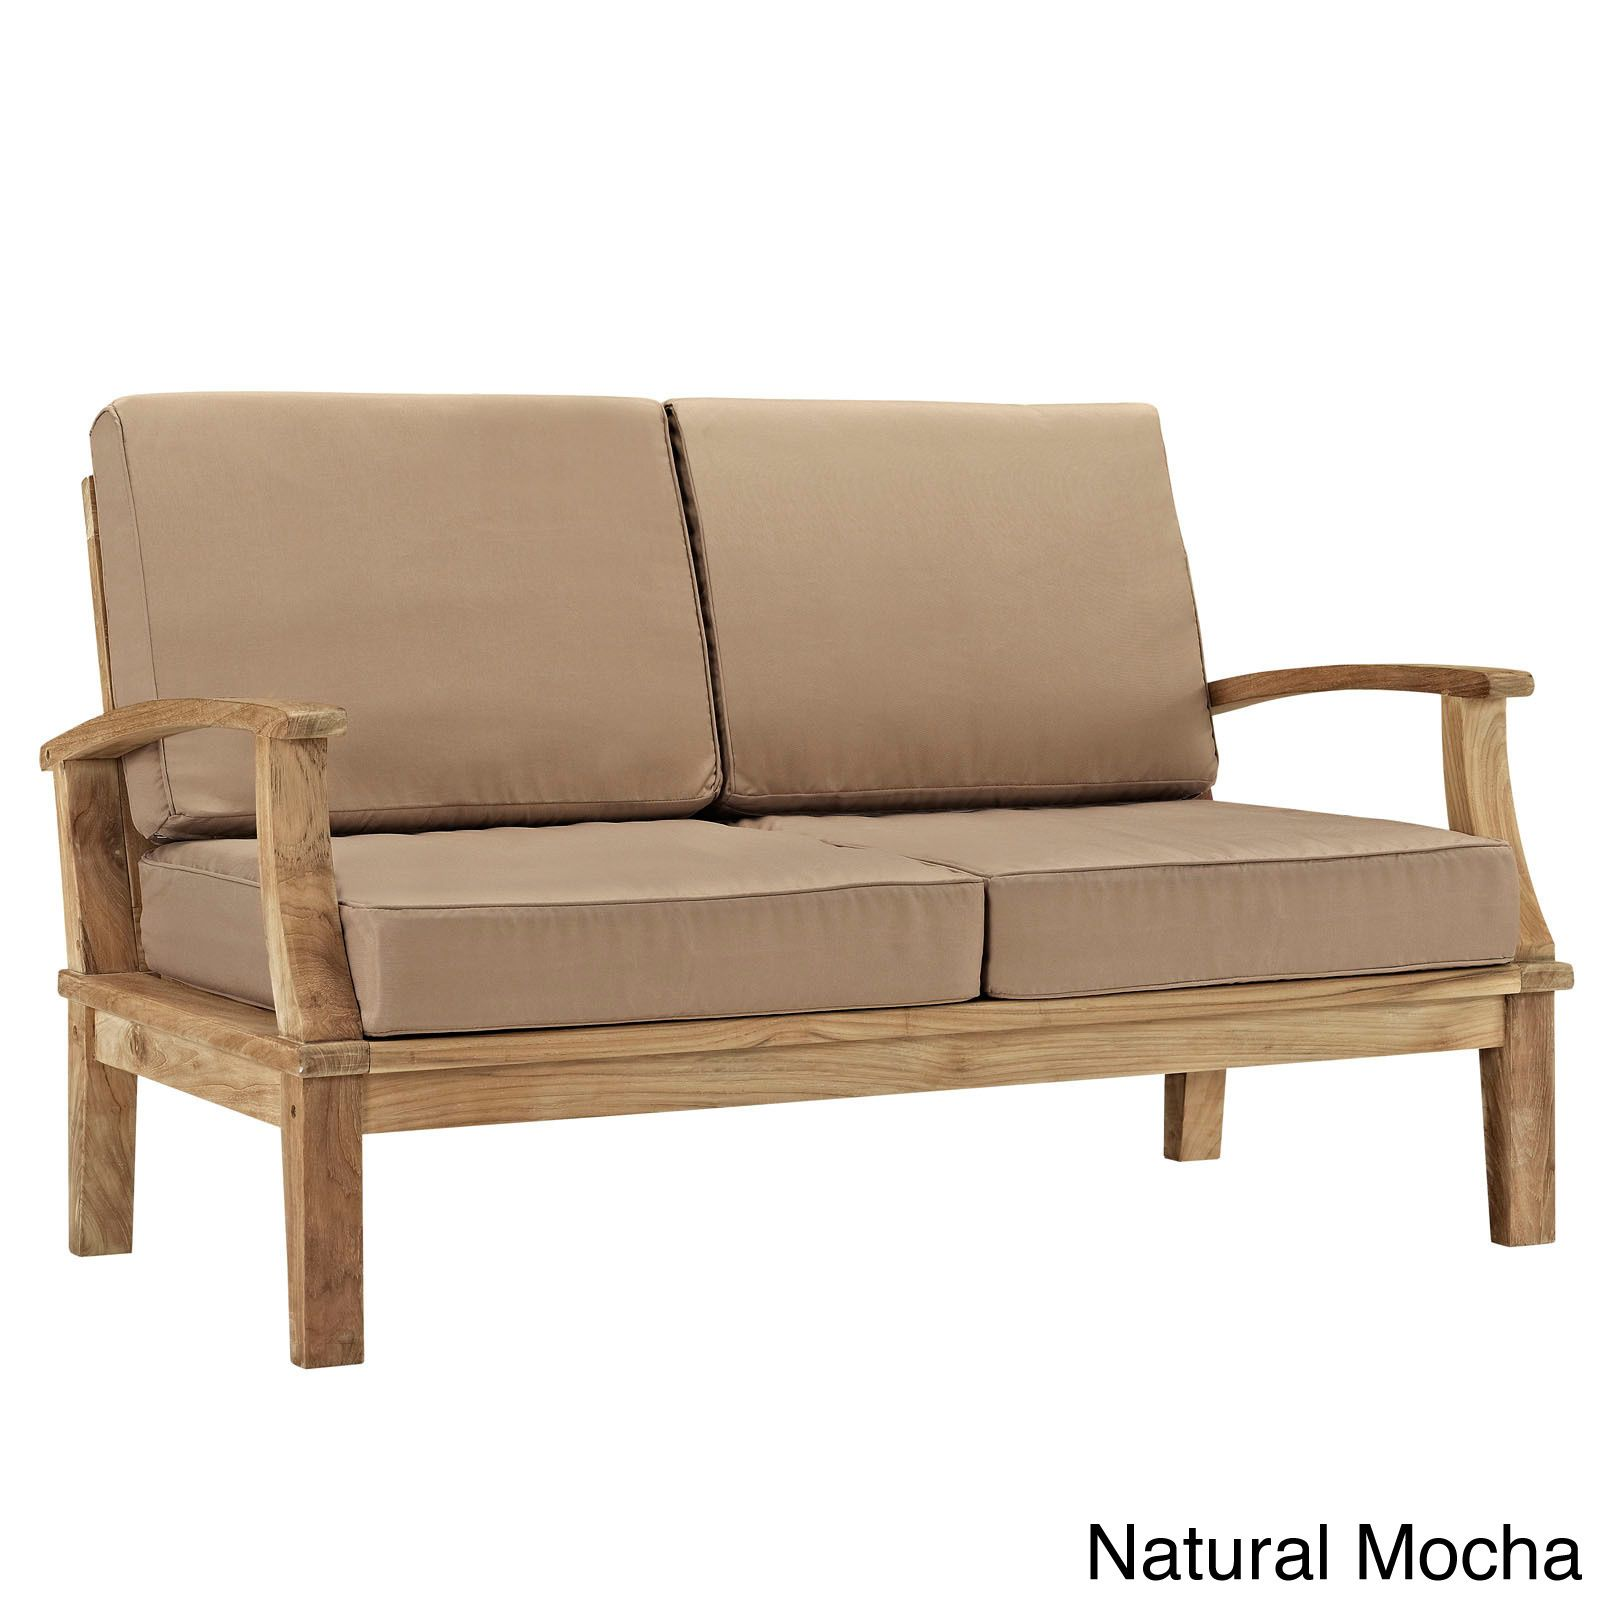 Awe Inspiring Modway Pier Outdoor Patio Teak Loveseat Natural Mocha Ocoug Best Dining Table And Chair Ideas Images Ocougorg